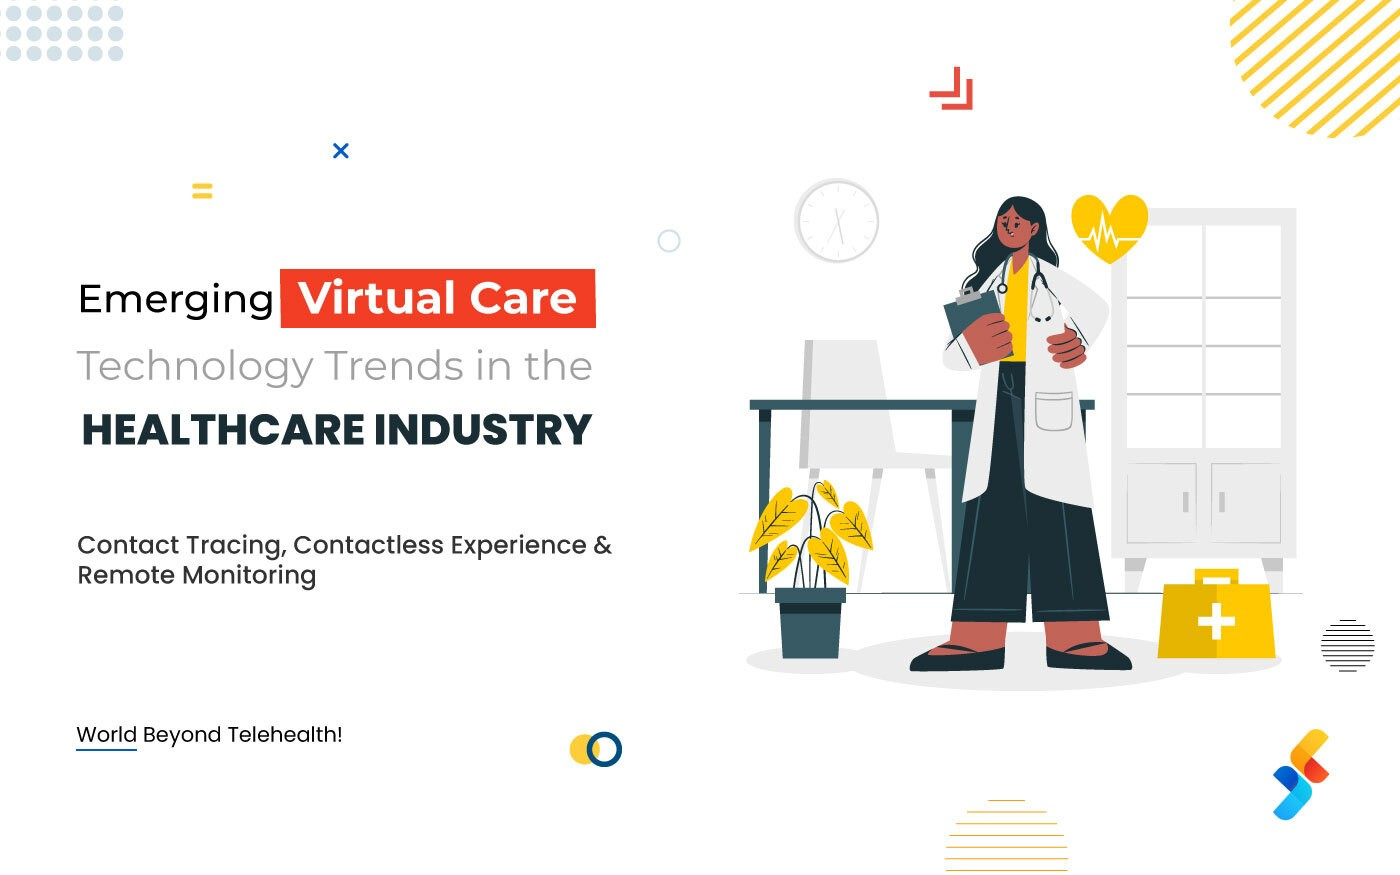 Emerging-Virtual-Care-Technology-Trends-in-the-Healthcare-Industry